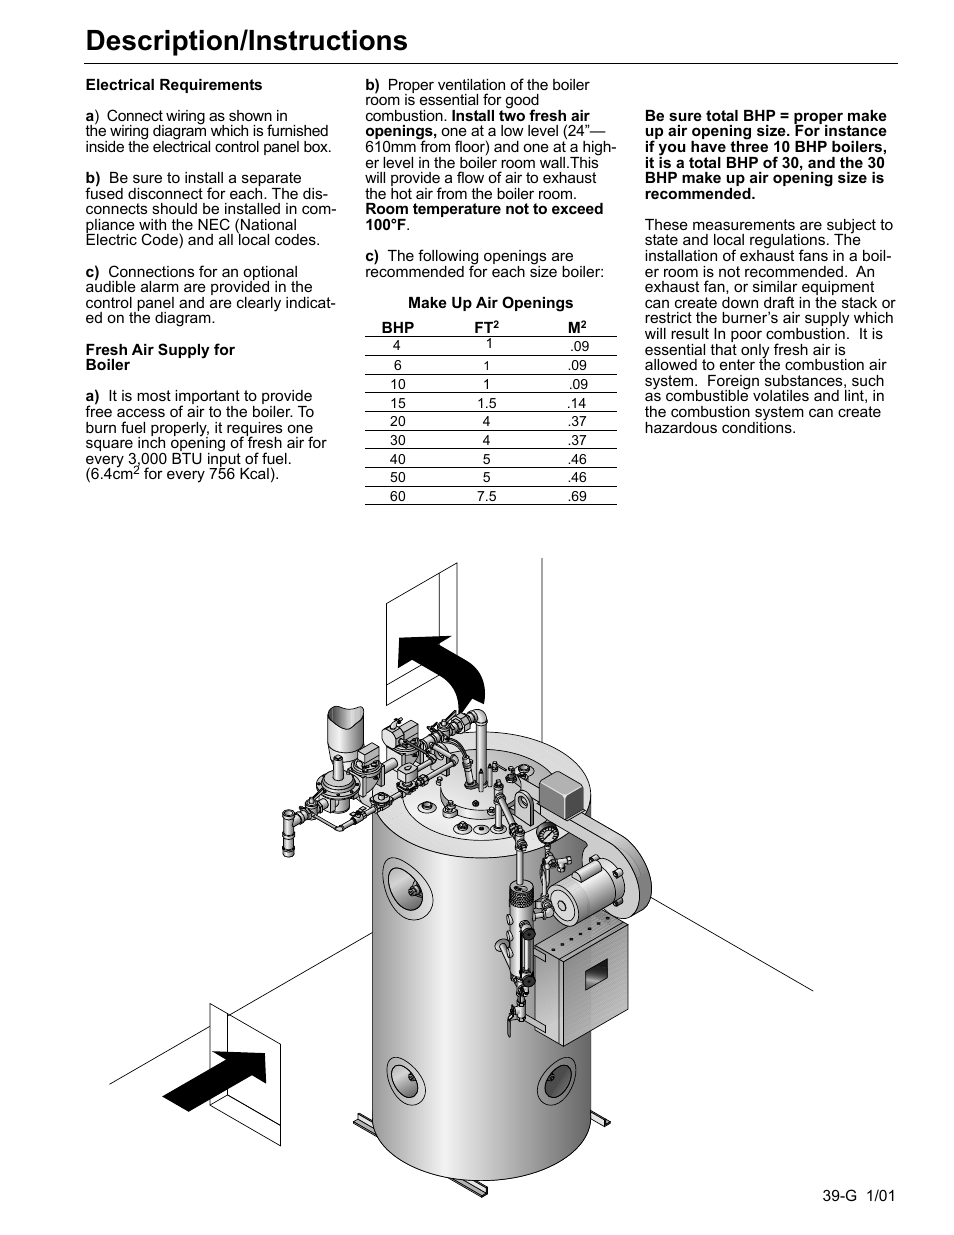 medium resolution of description instructions fulton edge icx or fb f vertical tubeless boilers steam gas fired user manual page 46 102